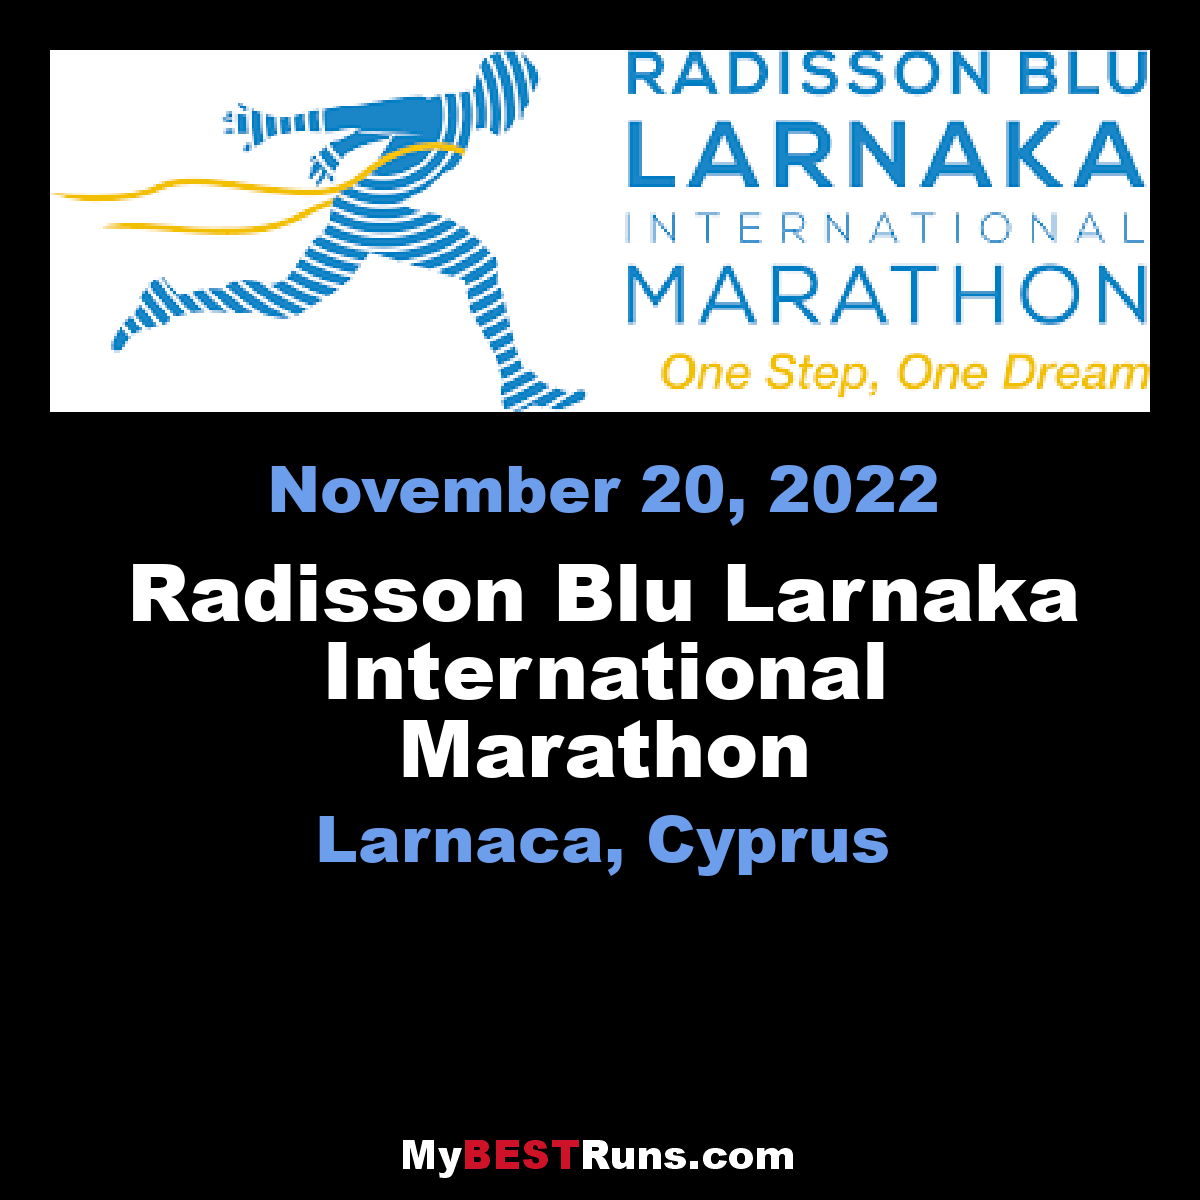 Radisson Blu Larnaka International Marathon